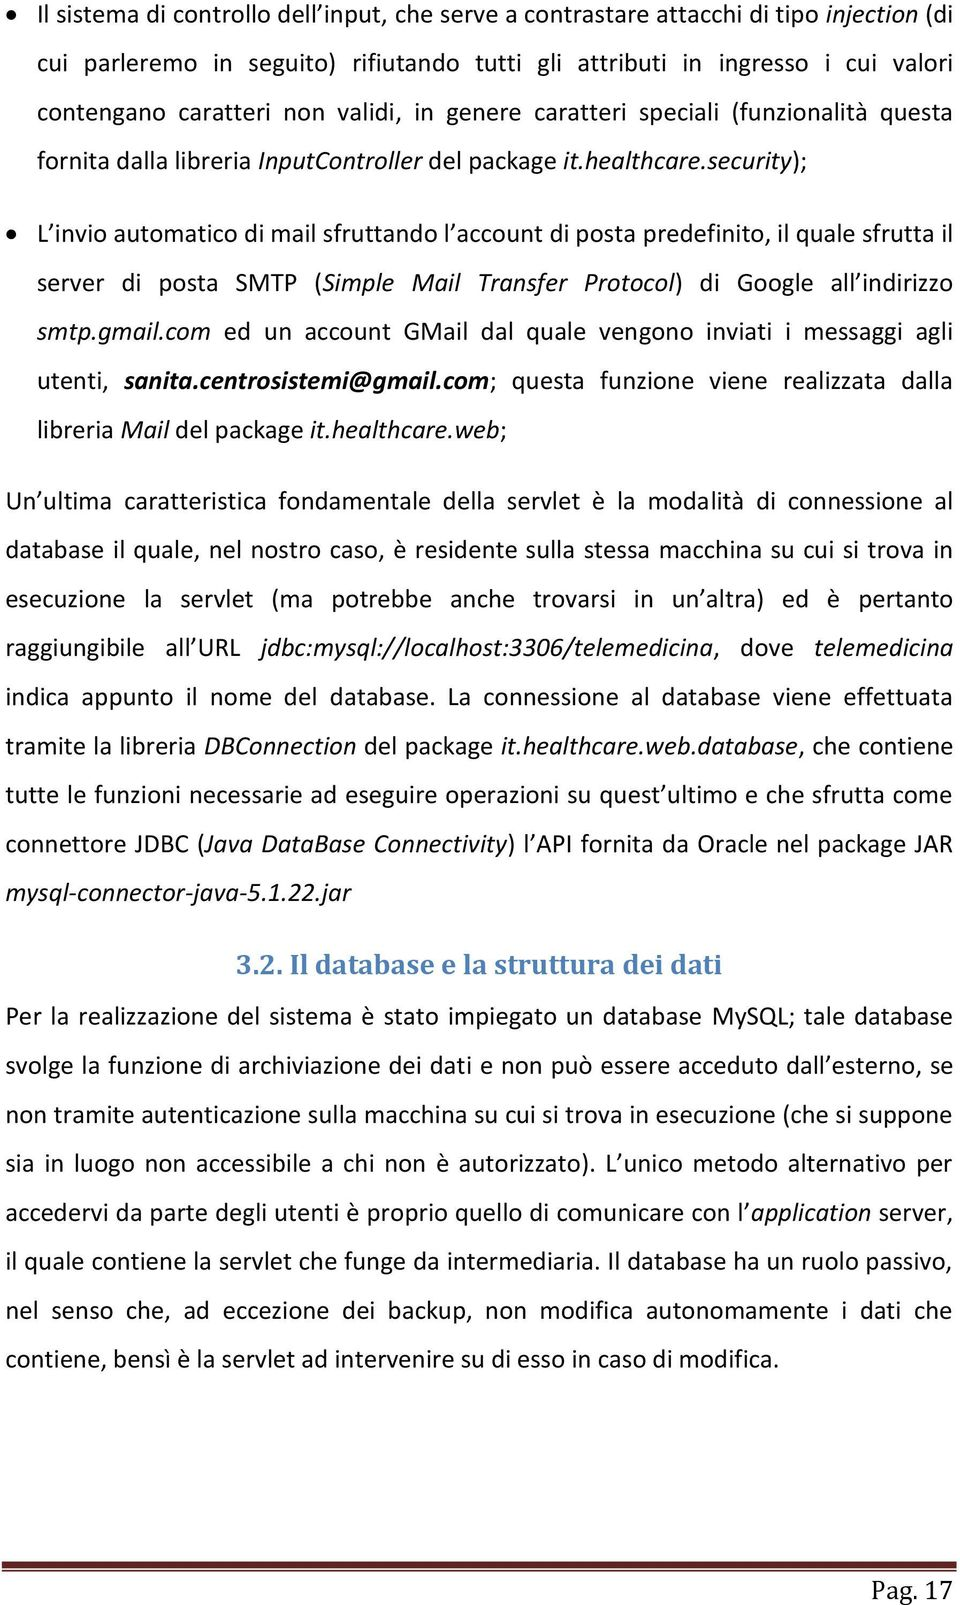 security); L invio automatico di mail sfruttando l account di posta predefinito, il quale sfrutta il server di posta SMTP (Simple Mail Transfer Protocol) di Google all indirizzo smtp.gmail.